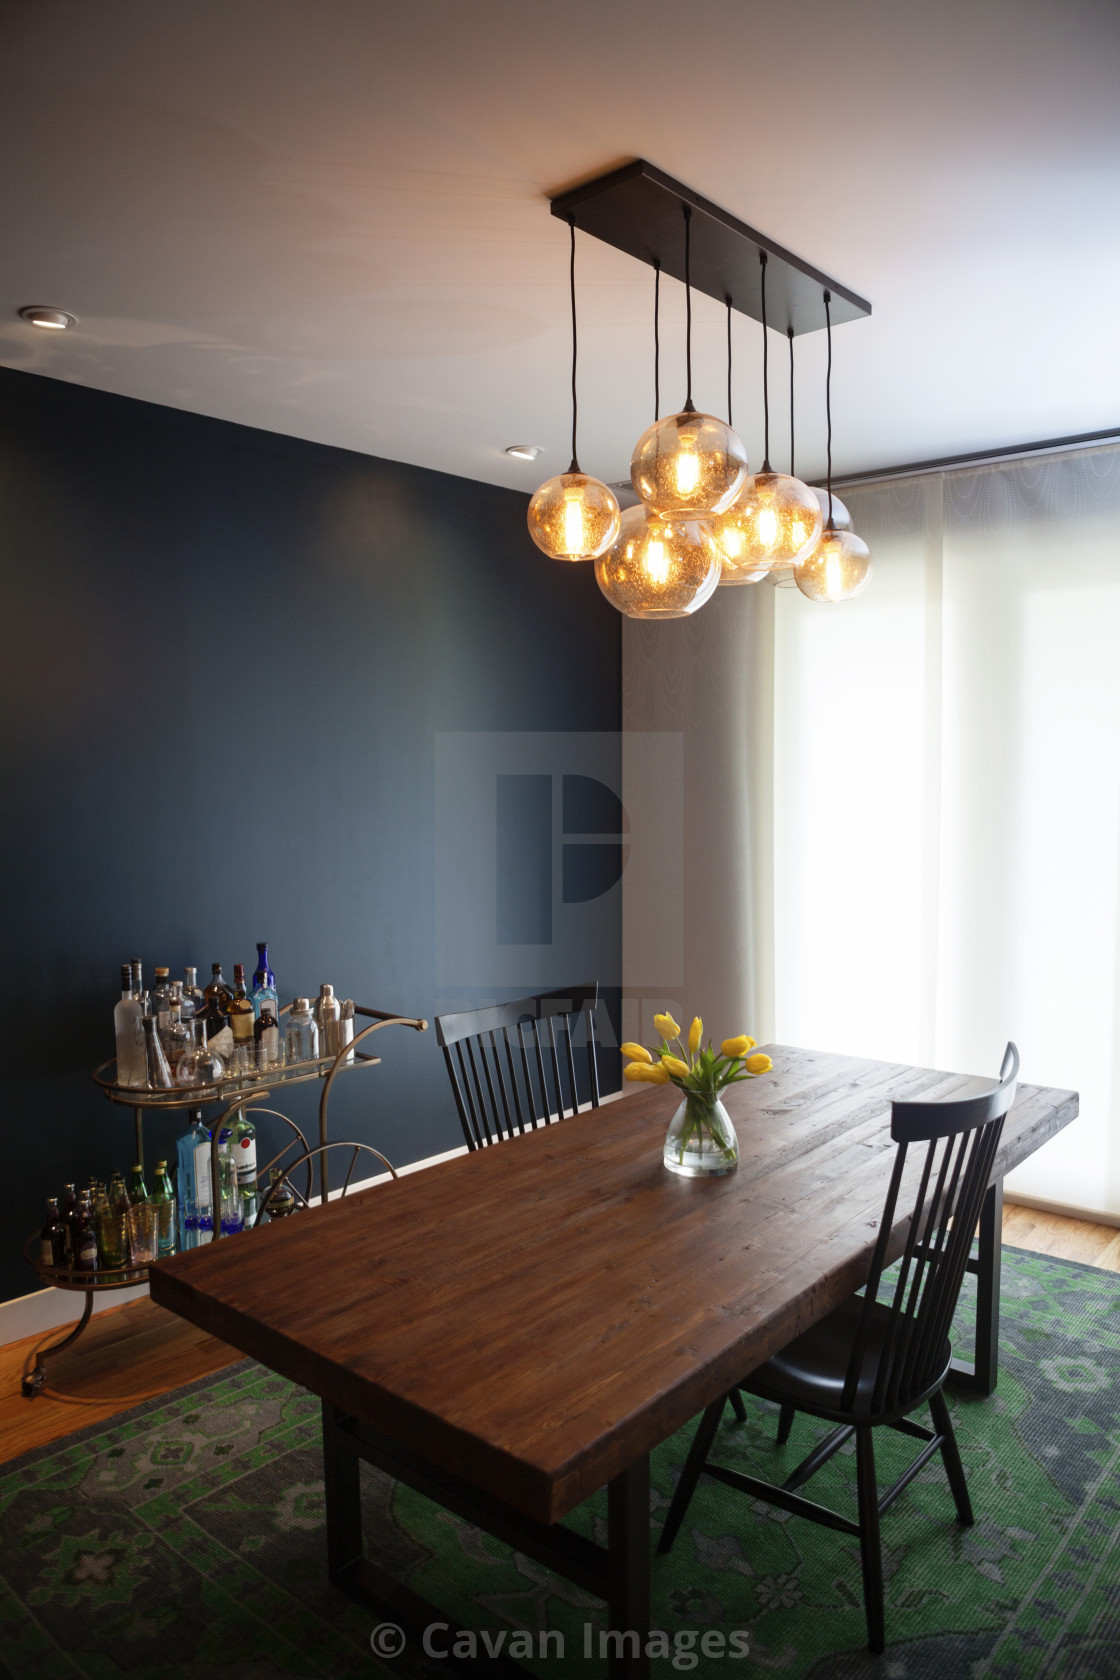 """Illuminated pendant lights over dining table at home"" stock image"